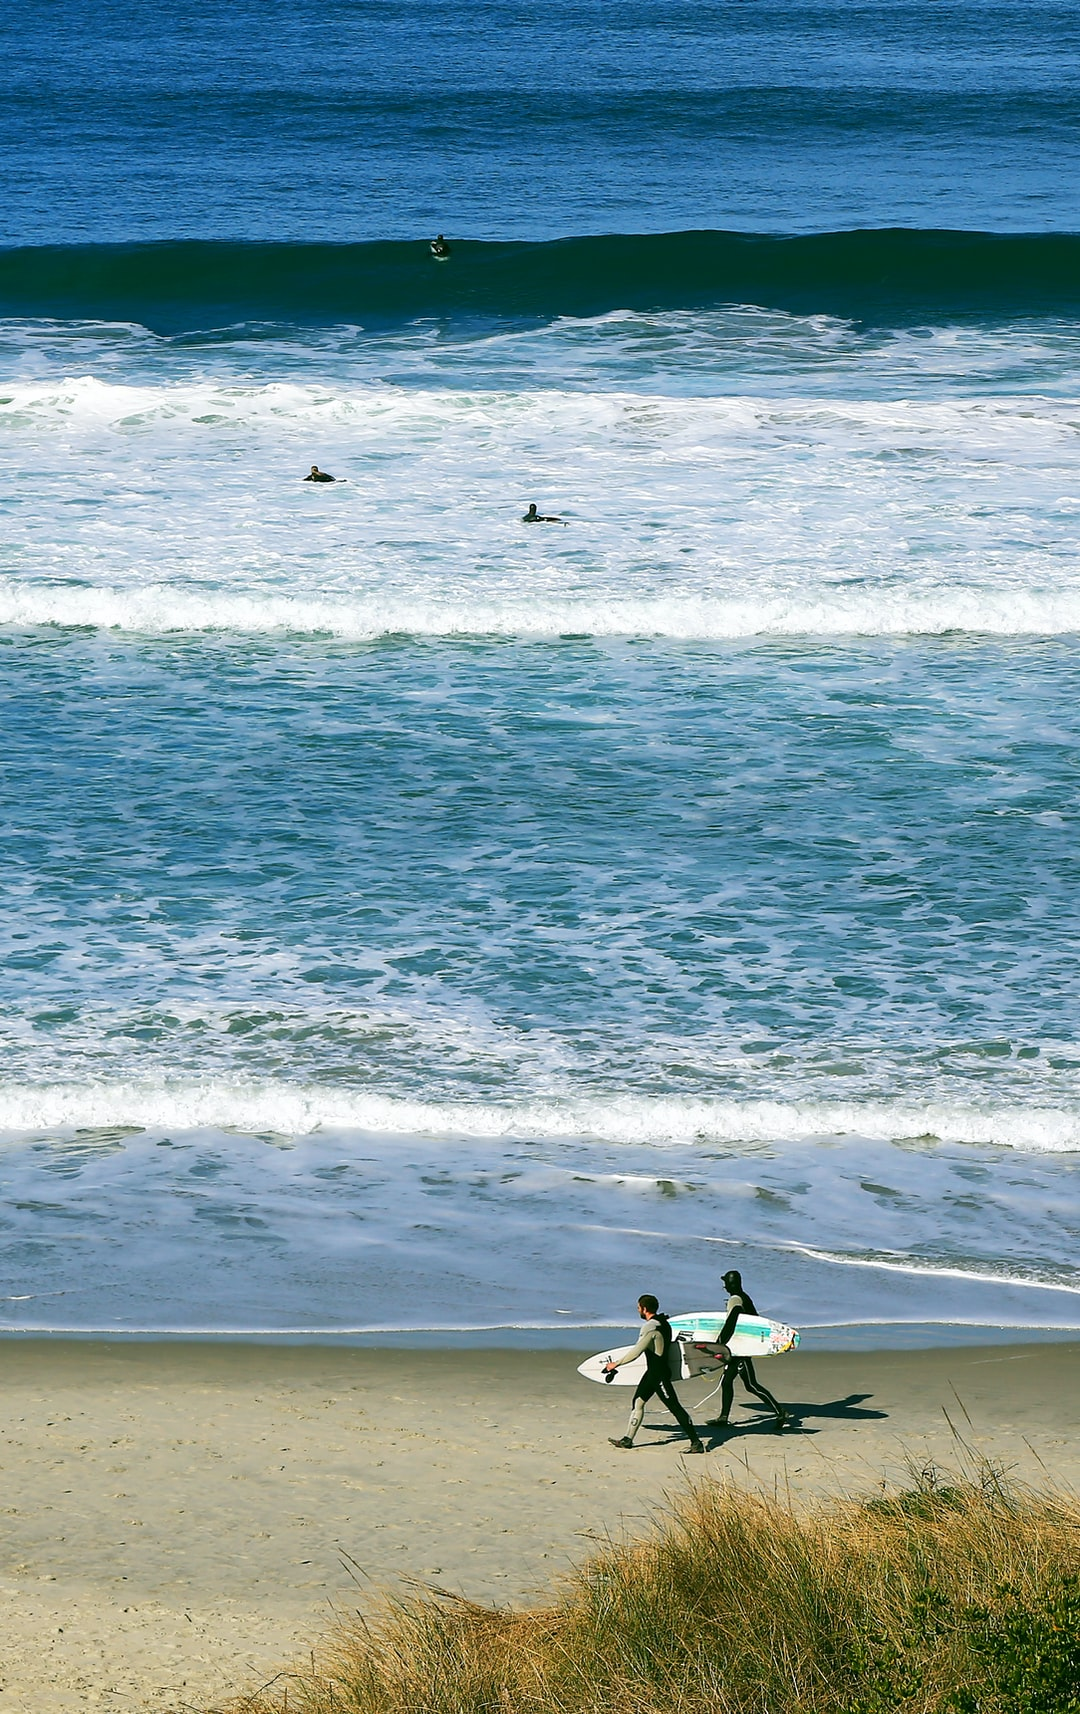 Surfies stride along next to the waves with their surfboards tucked under their arms.